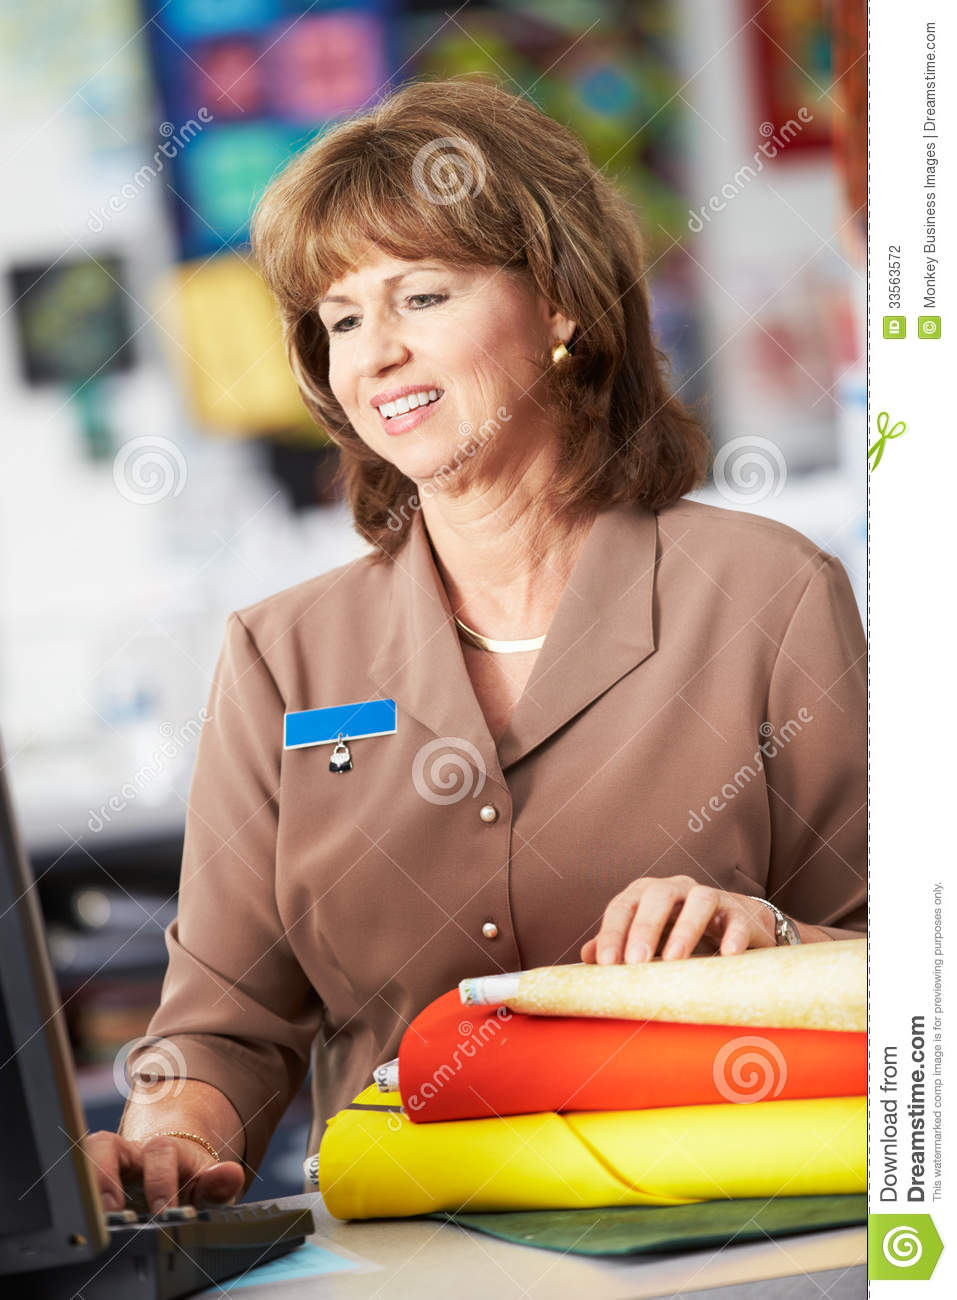 Female Cashier At Clothing Store Working At Computer